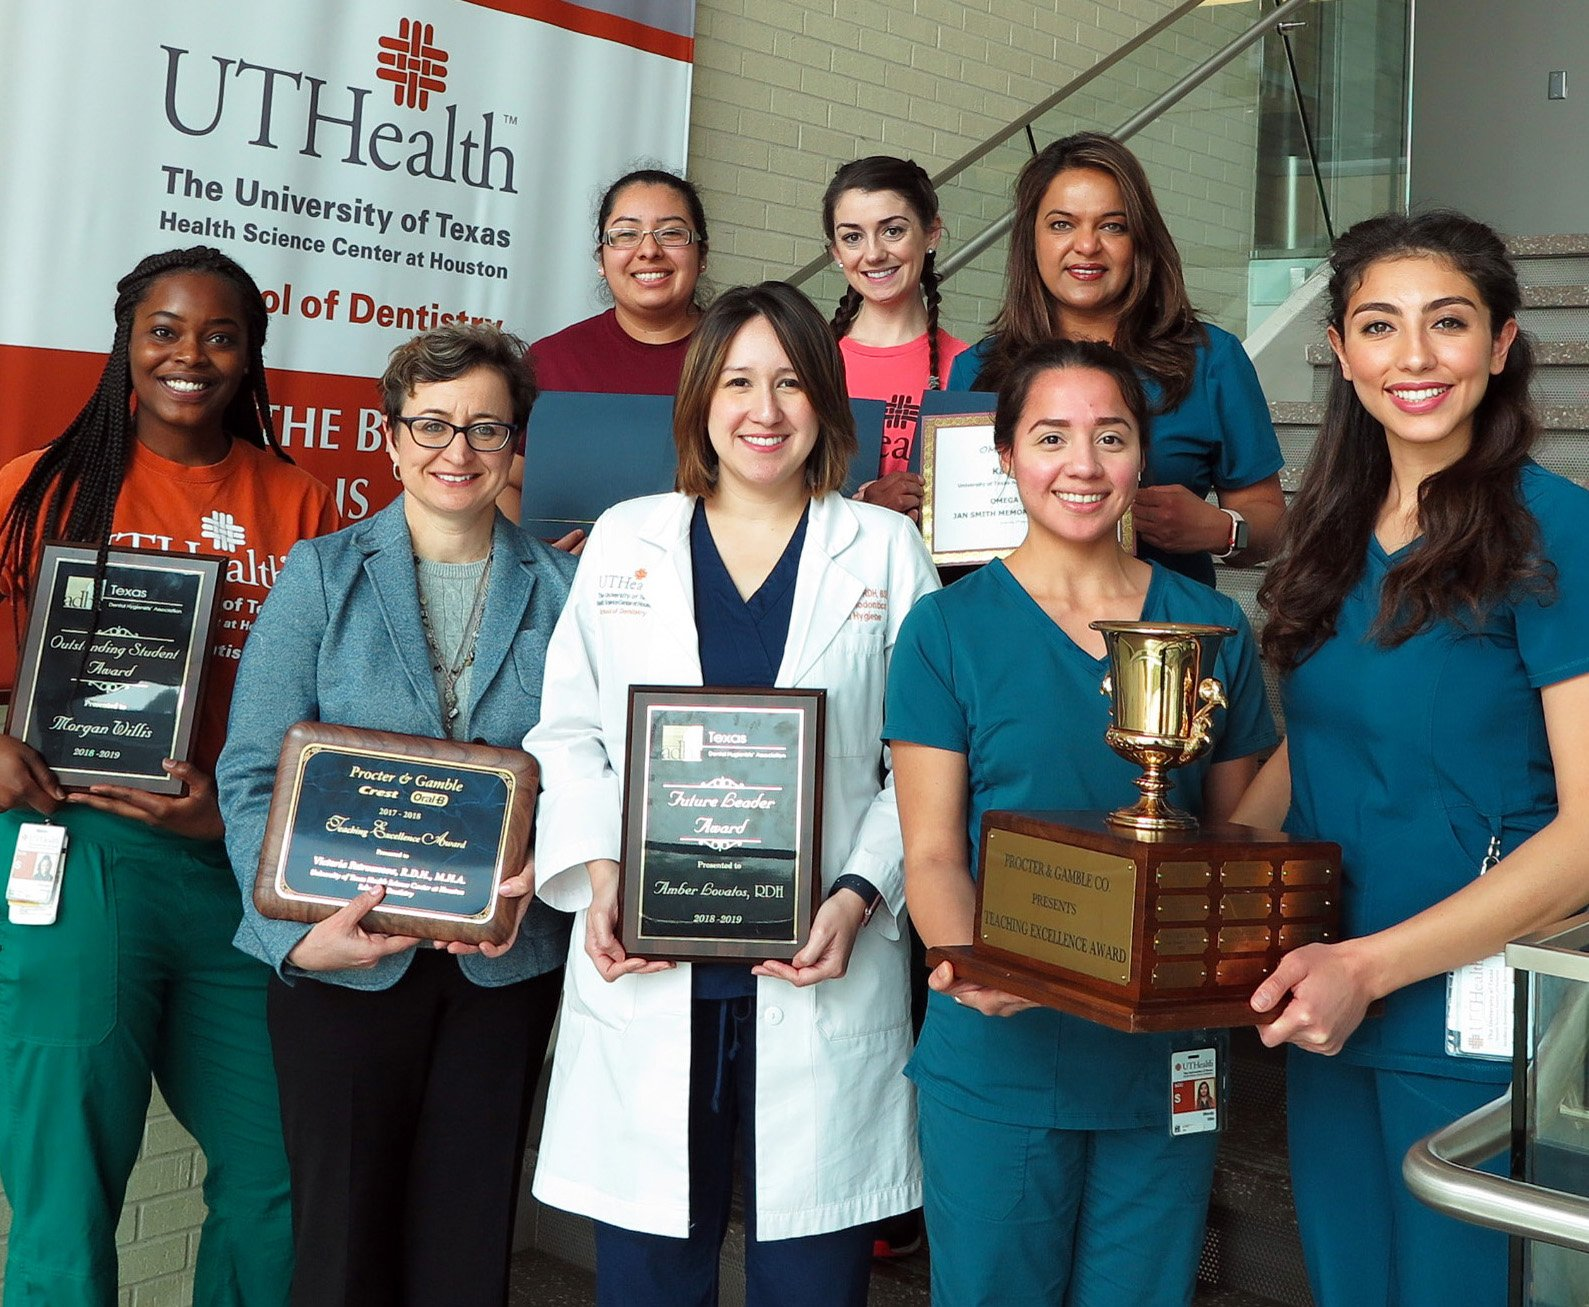 Dental hygiene award winners (from left) are Morgan Willis, Victoria Patrounova, RDH; Cristal Aldana-Lopez; Amber Lovatos, RDH; Shelby Burdoin; Karen D'Mello; Wendy Villa and Rosanna Mehrinfar.